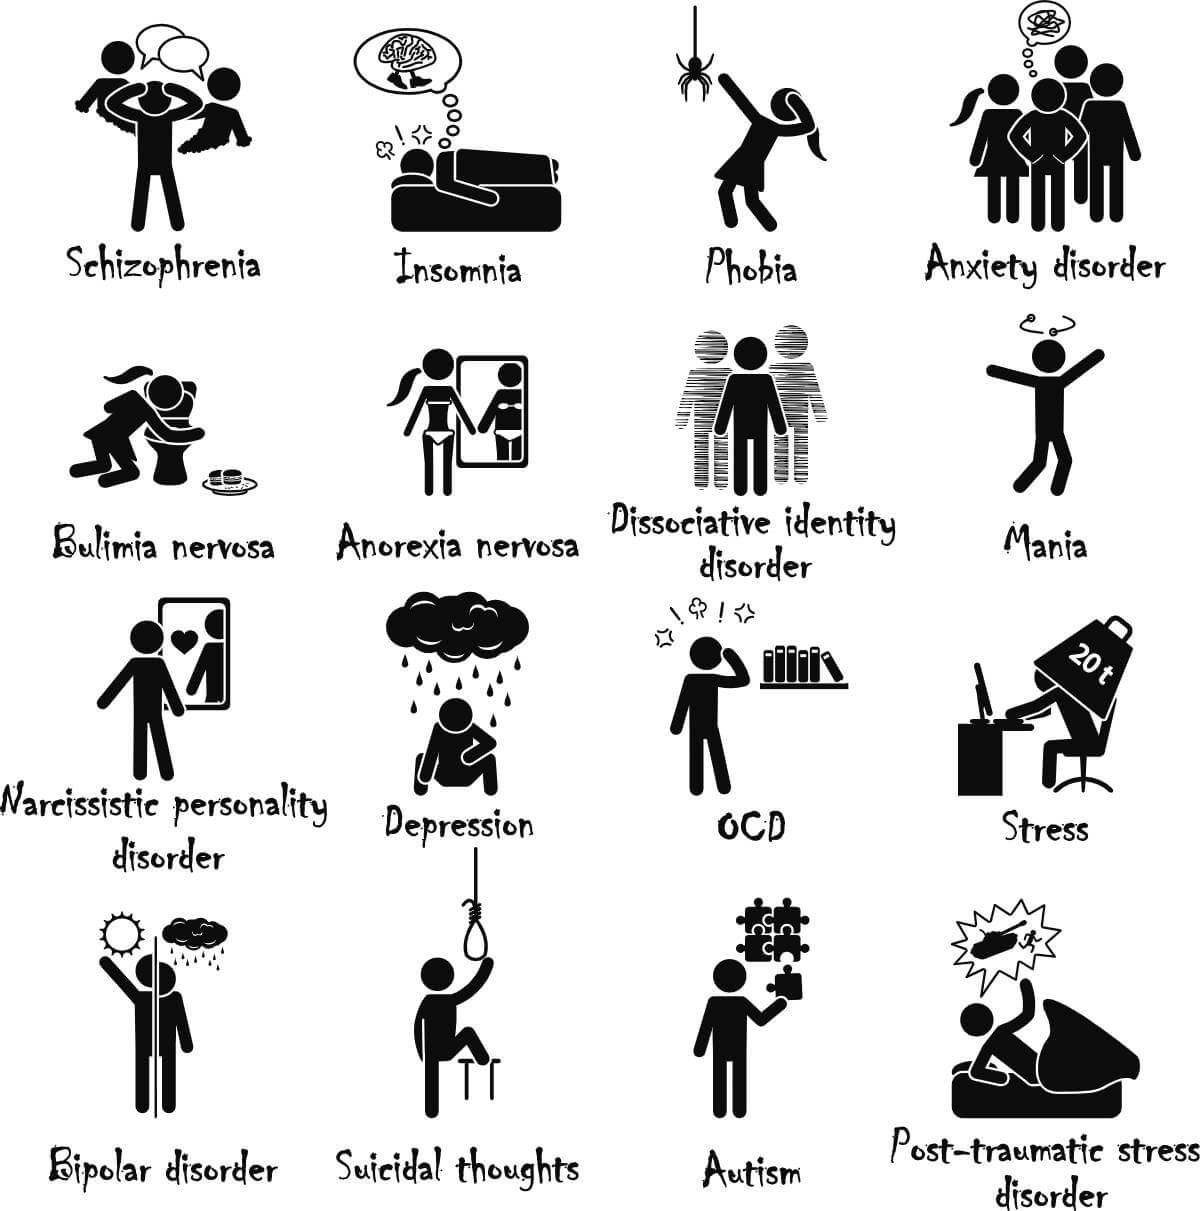 Mental disorders and illness icon set